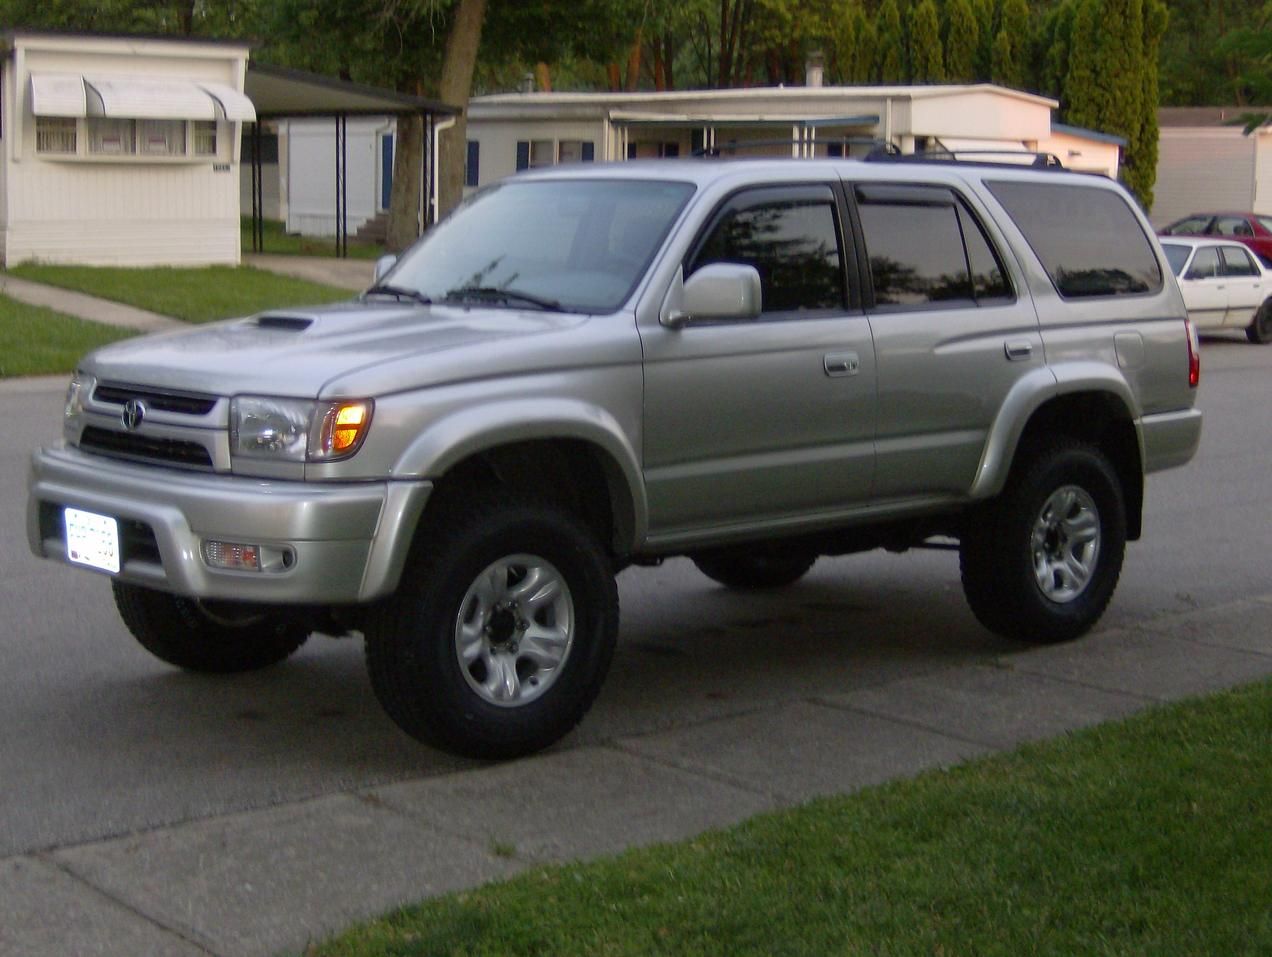 Toyota Highlander 2002 Wiring Trusted Diagrams 2003 Stereo 4runner Or 4th Gen Forum Largest Diagram